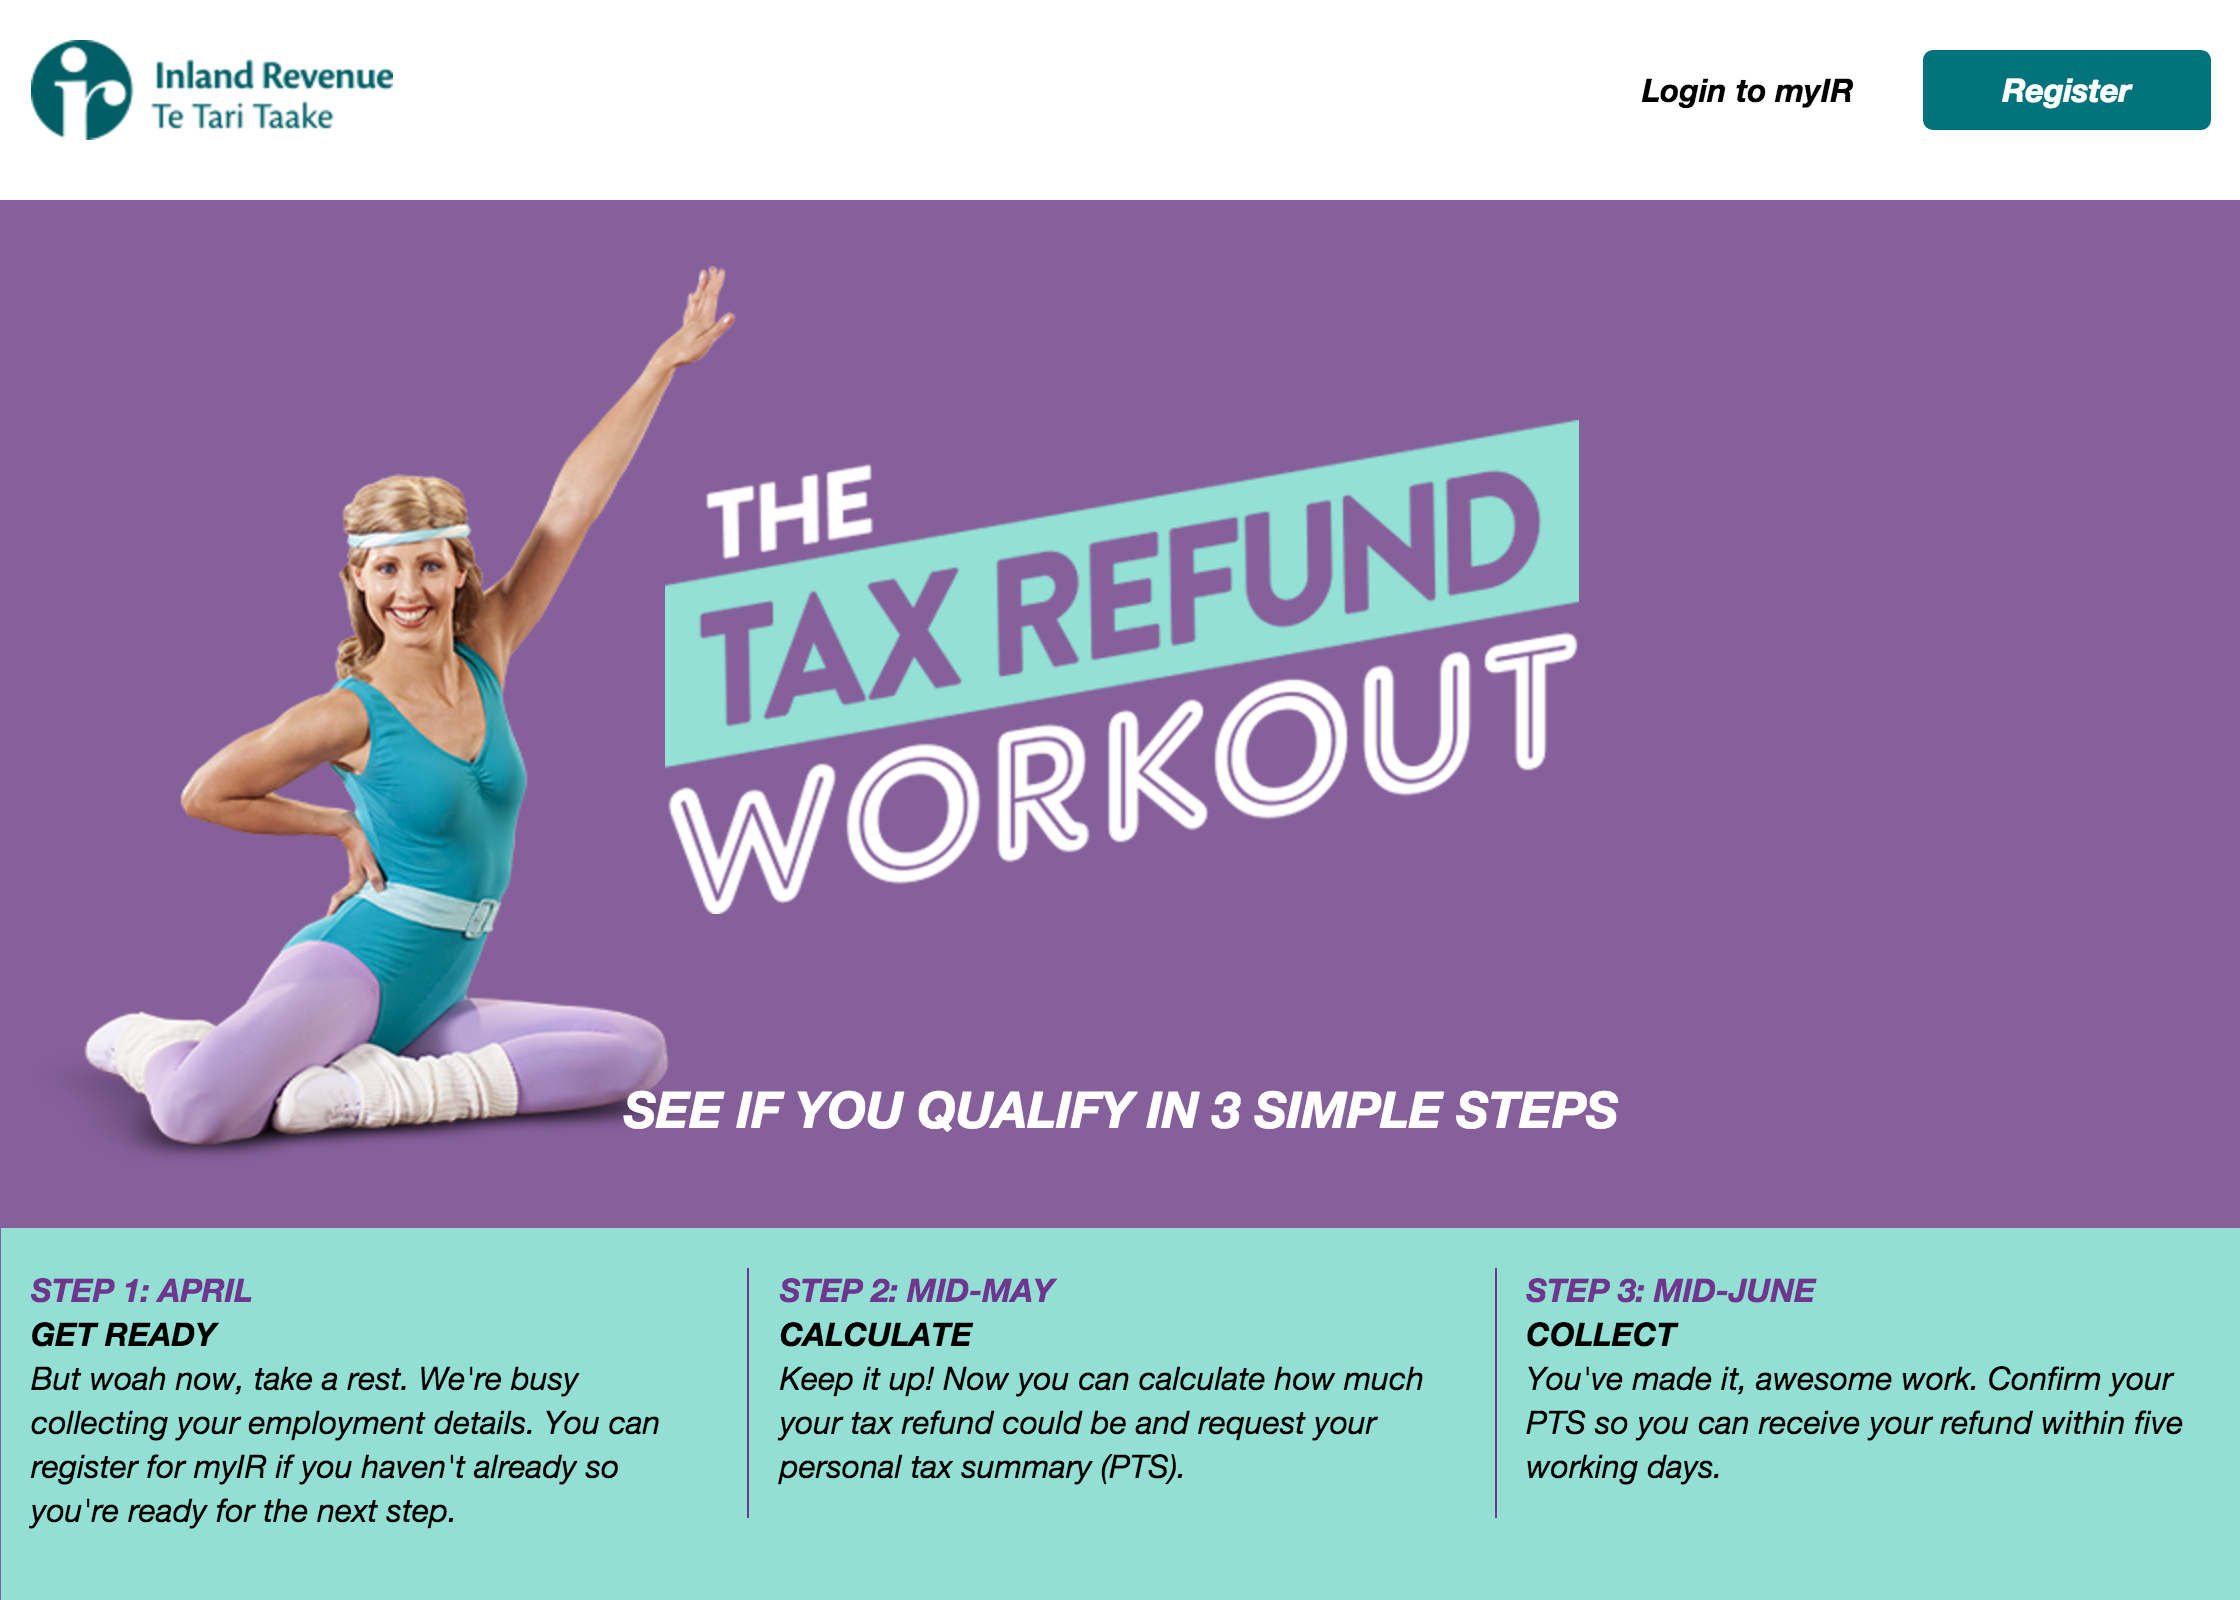 How To Process Your Own Personal Tax Refund | New Zealand | DIY